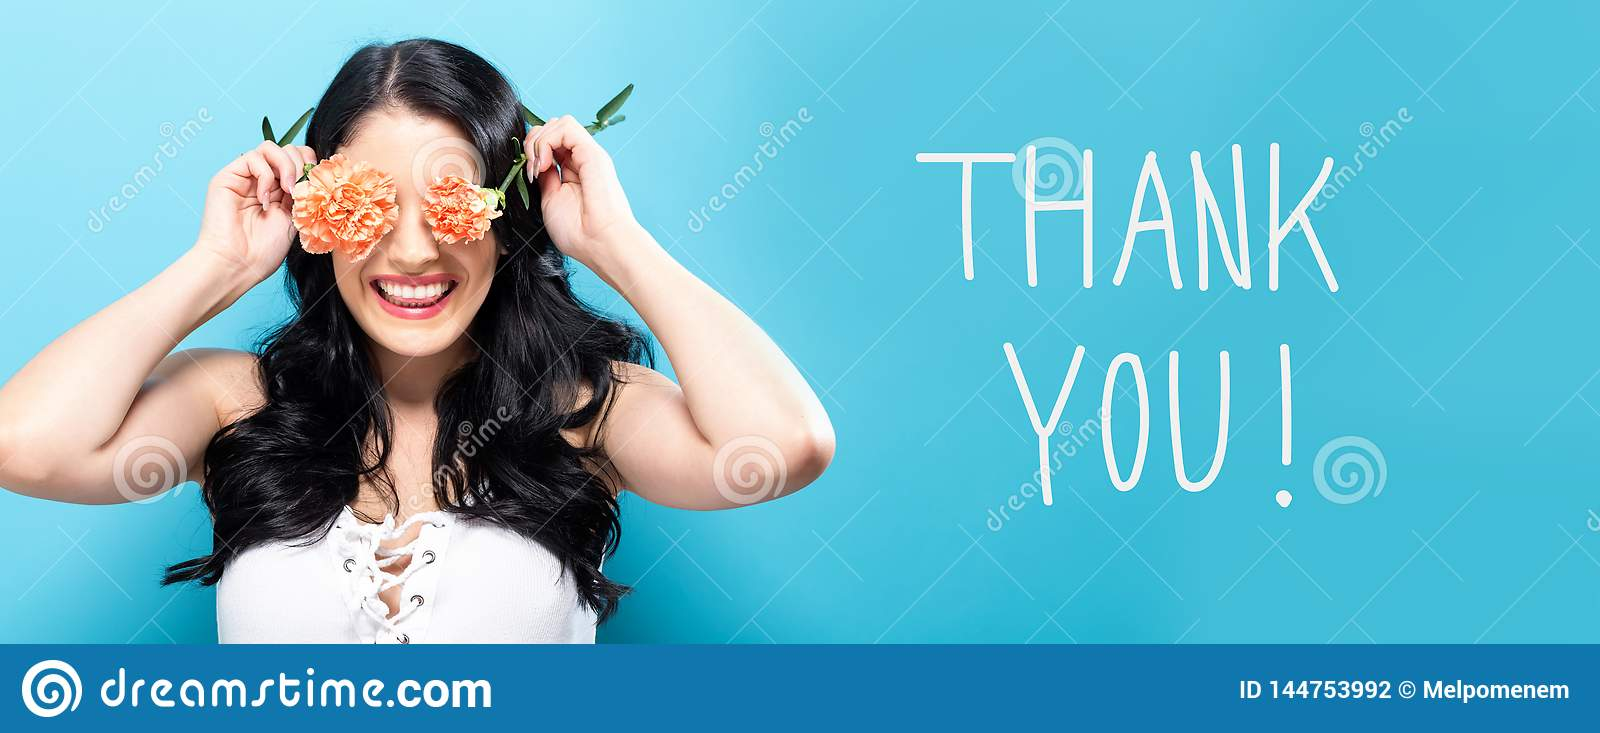 Thank you message with young woman holding carnations